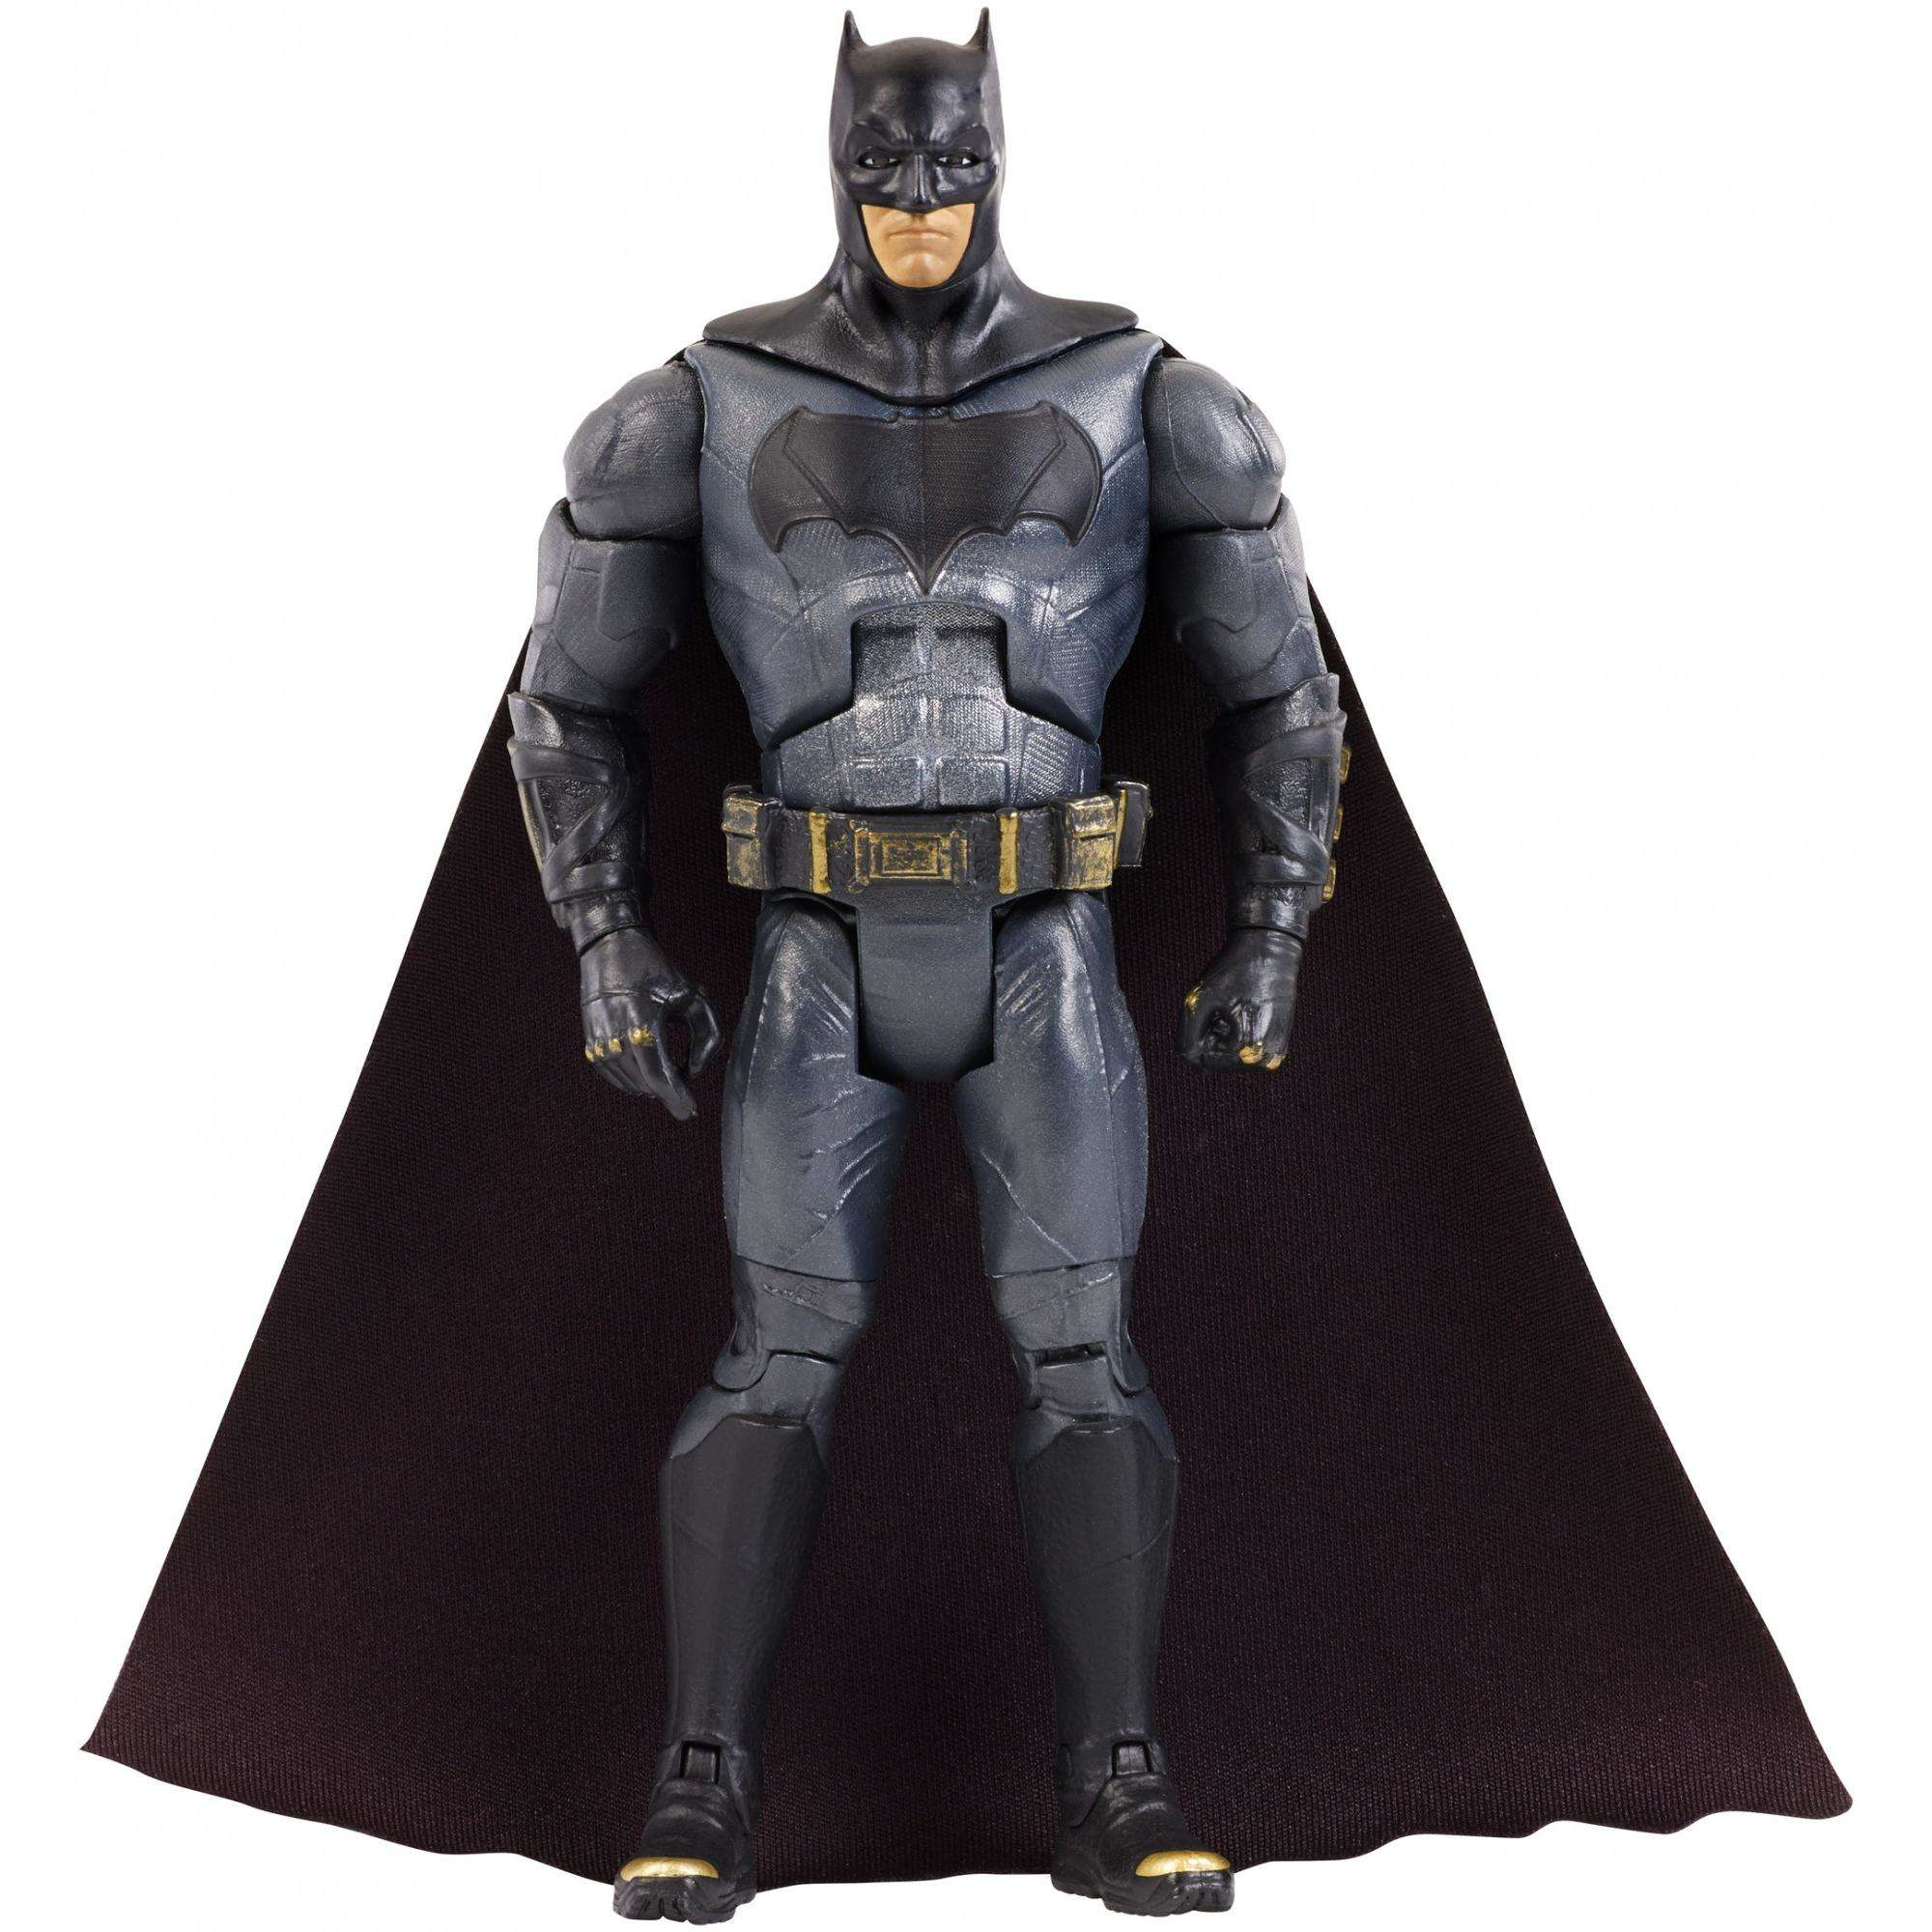 DC Comics Multiverse Justice League Batman Figure by Mattel